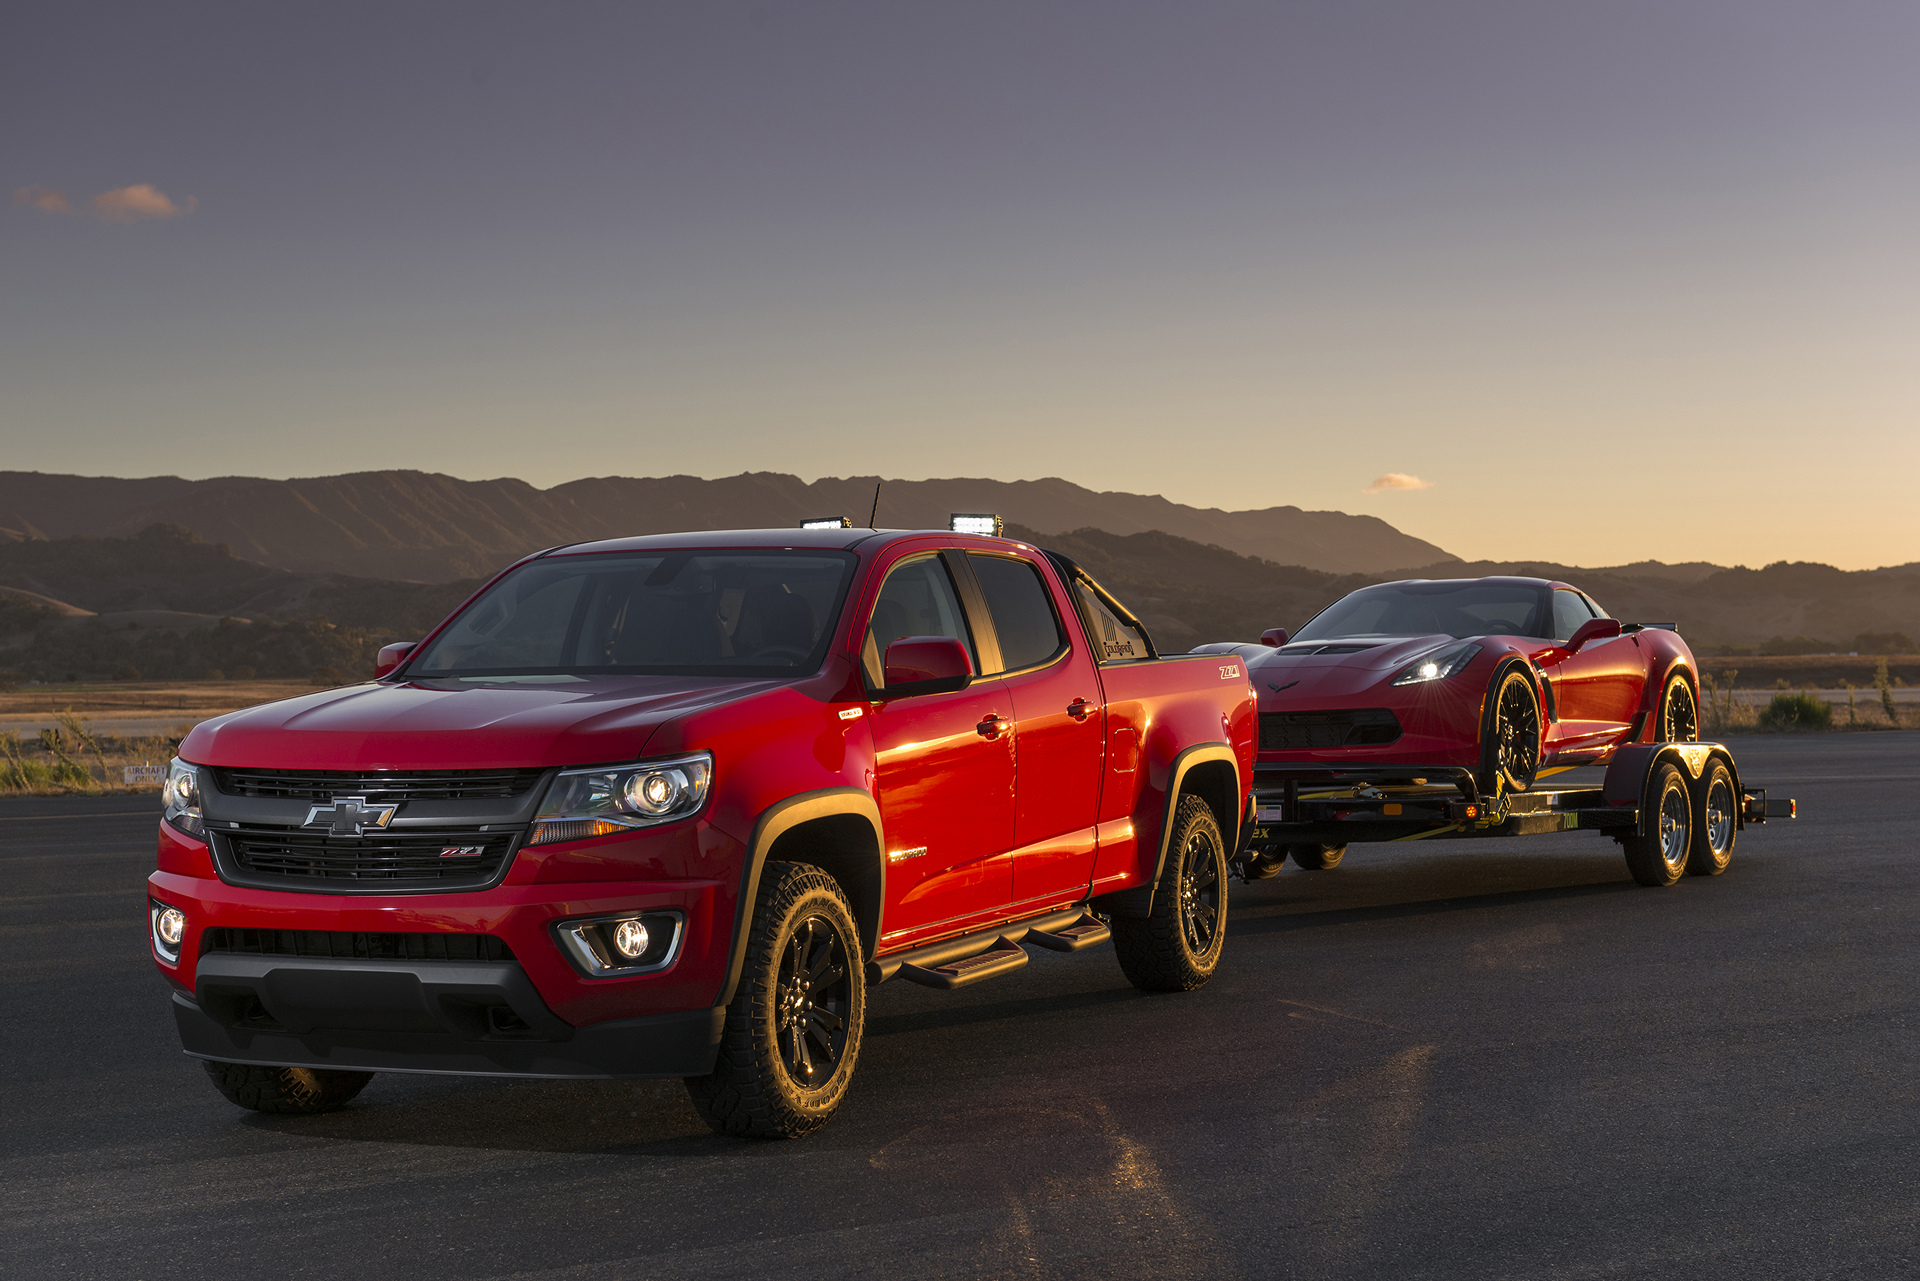 2016 Chevrolet Colorado Diesel © General Motors